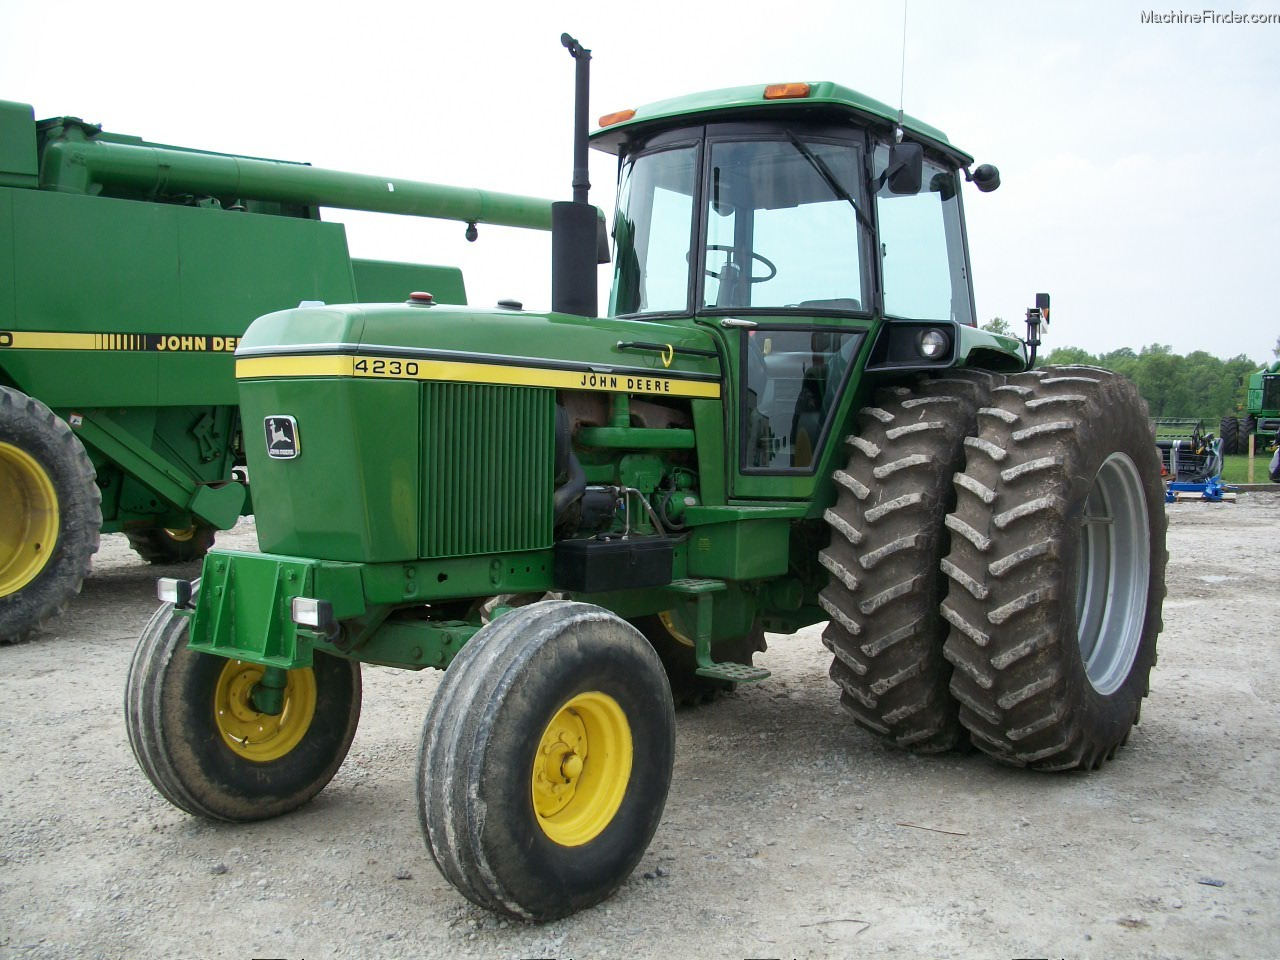 4230 john deere tractor wiring diagram with 4230 John Deere Wiring Diagram on Mahindra 2615 Wiring Diagram Wiring Diagrams moreover John Deere 5105 Wiring Diagram together with John Deere 4020 Hydraulic Schematic furthermore S21529 besides S60264.